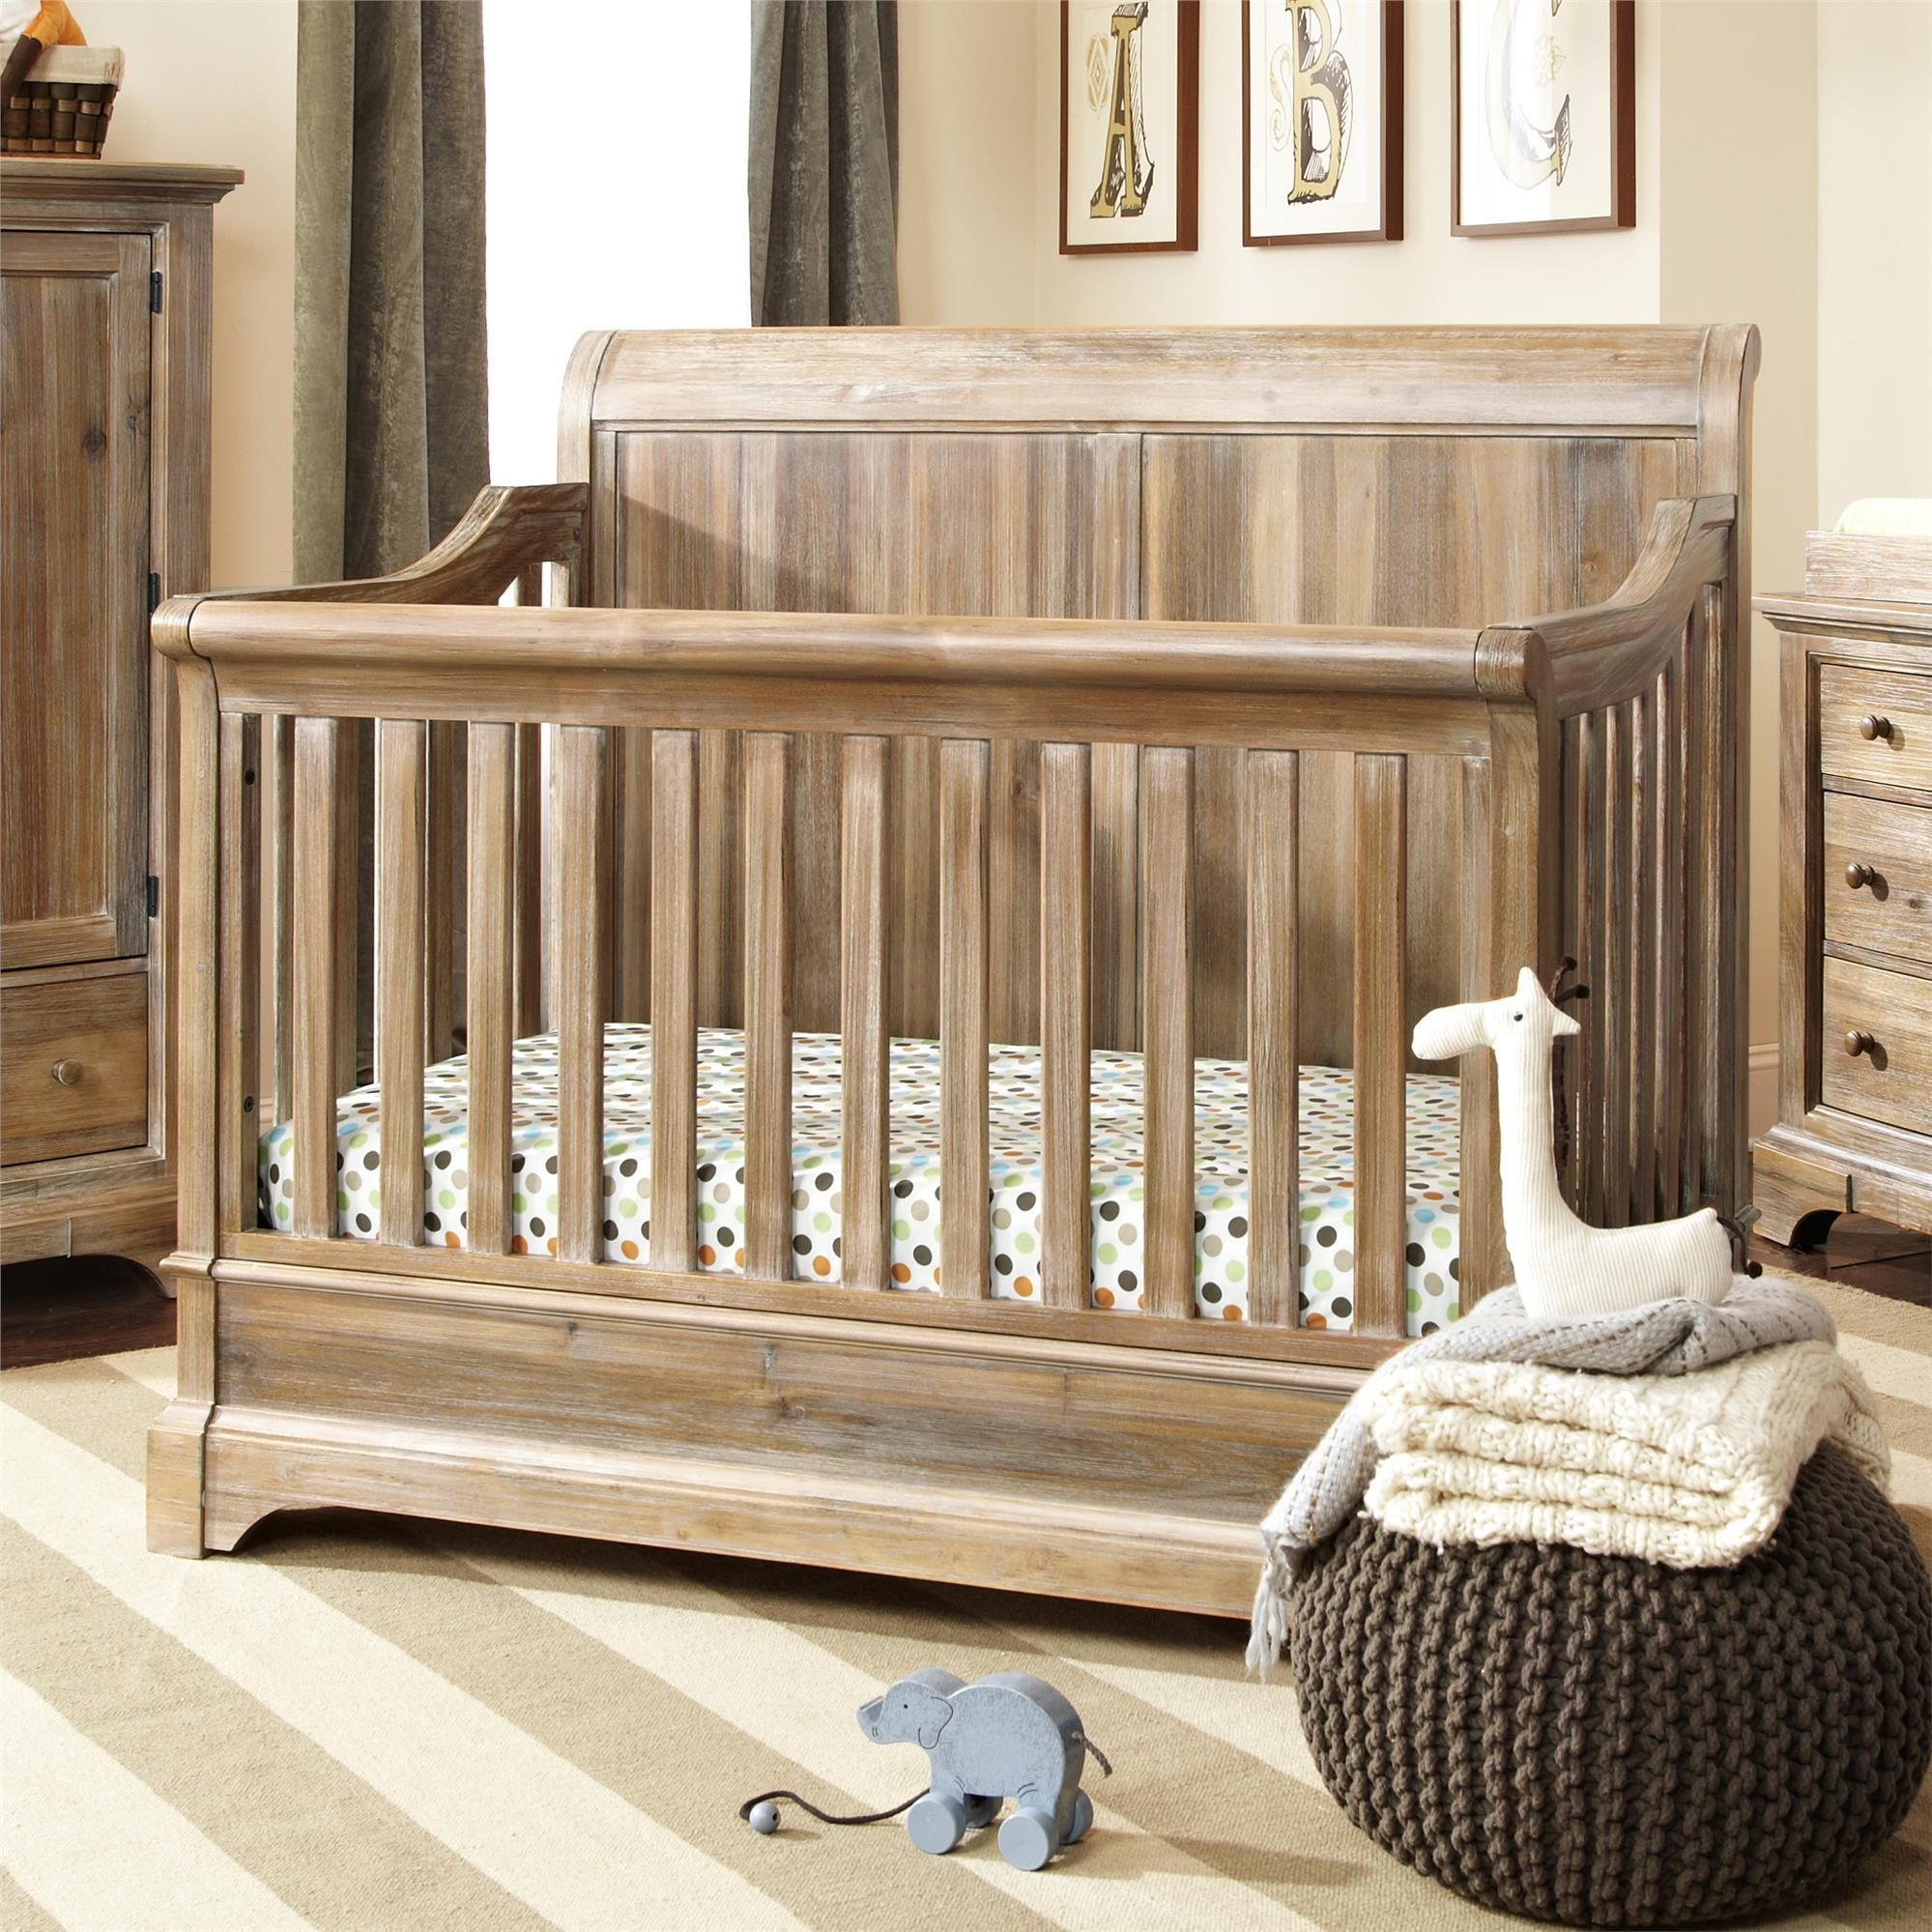 Best 25+ Wood Crib Ideas On Pinterest | Baby Cribs, Cribs And Adventure  Nursery